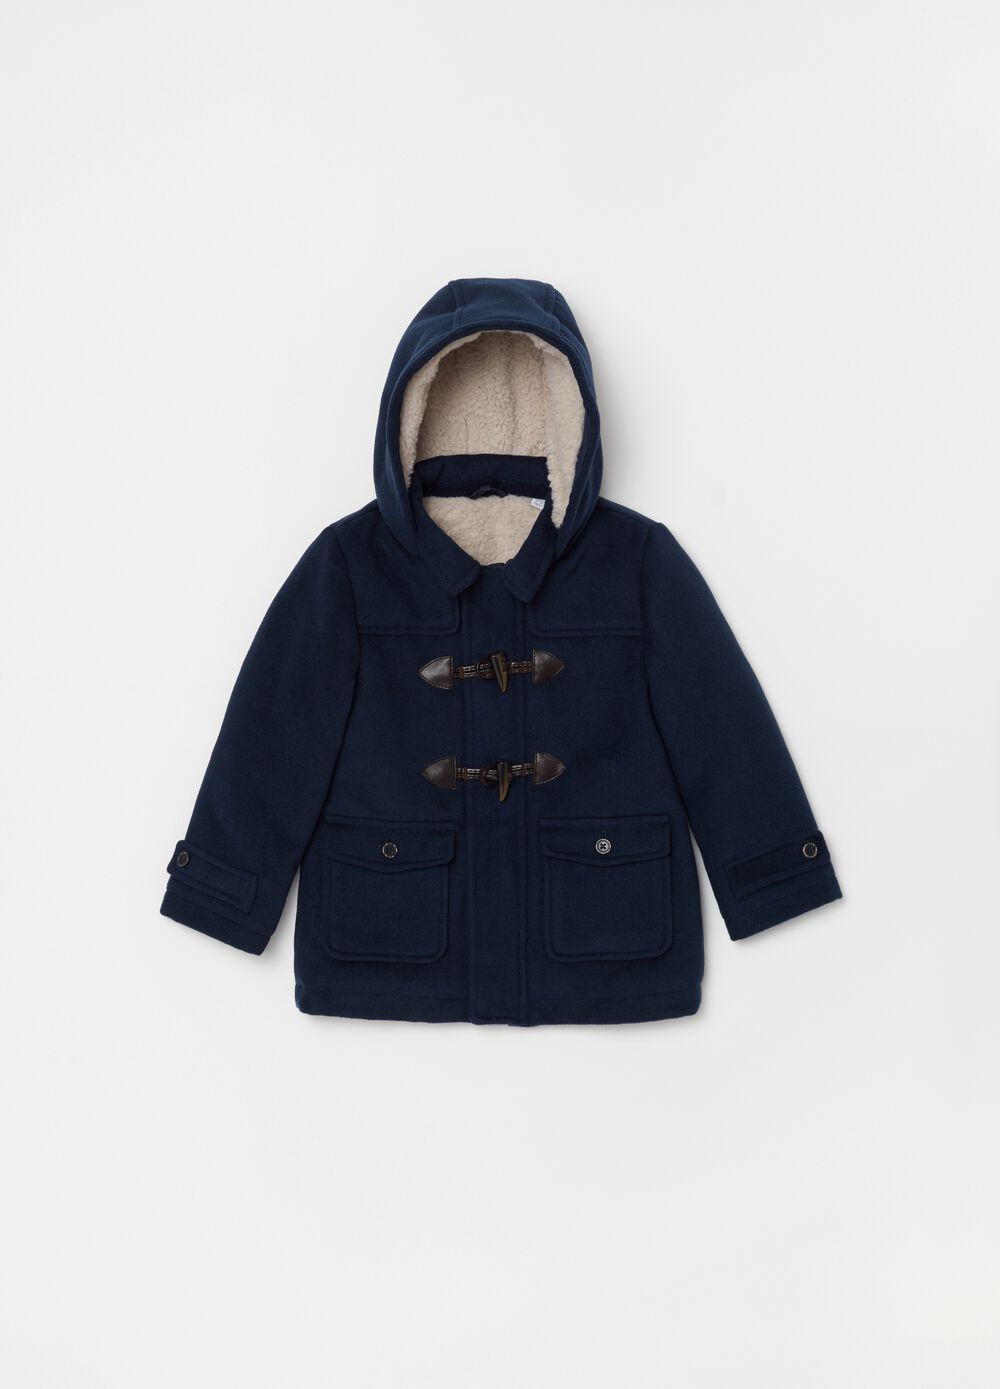 Jacket with hood and toggles